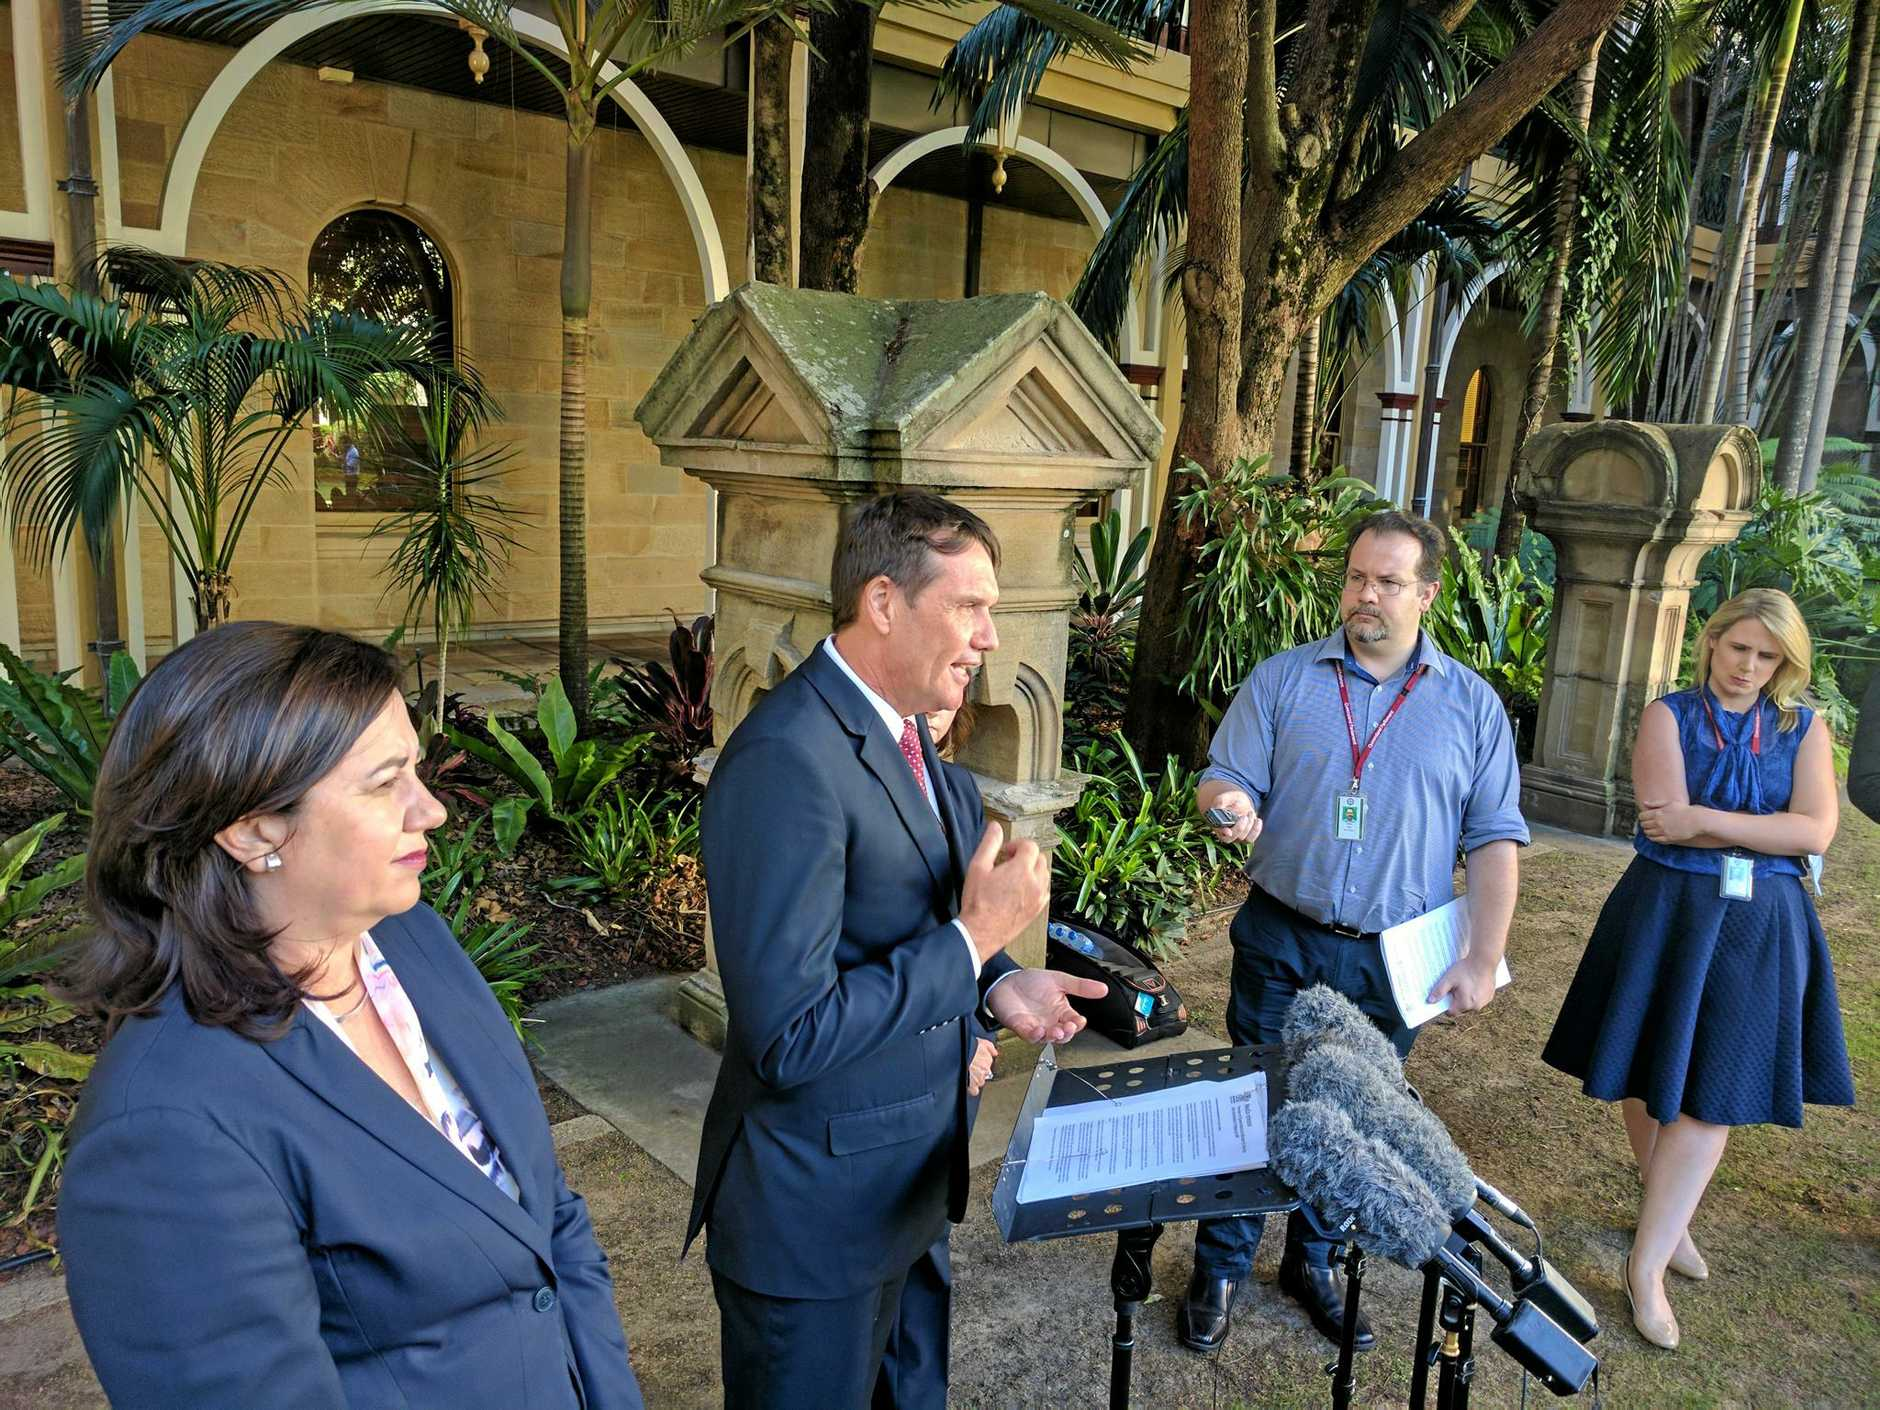 State Development Minister Anthony Lynham and Premier Annastacia Palaszczuk announcing planned lockout laws would not be introduced.